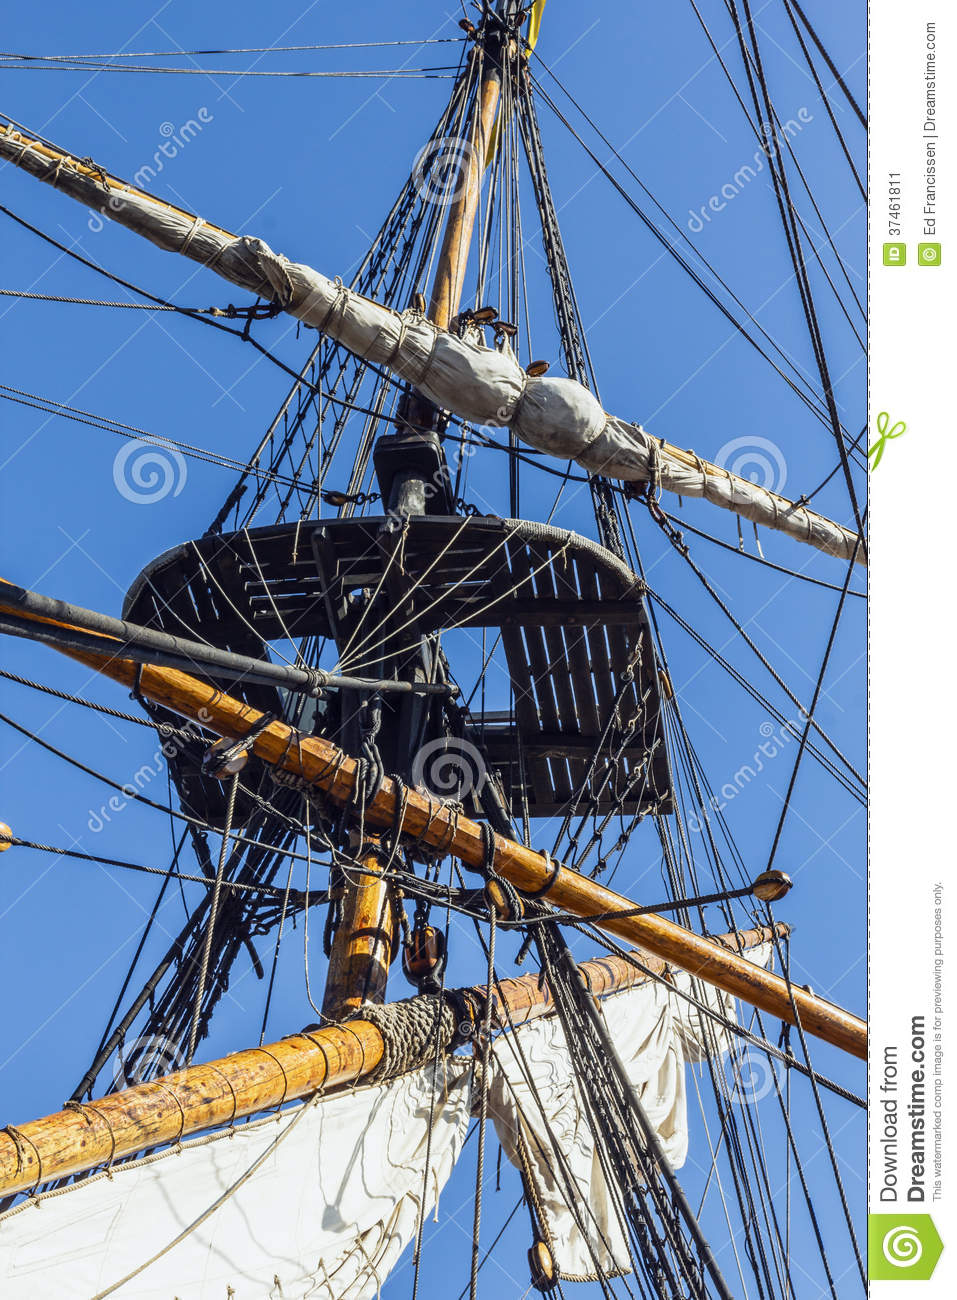 Rigging of a tall ship.